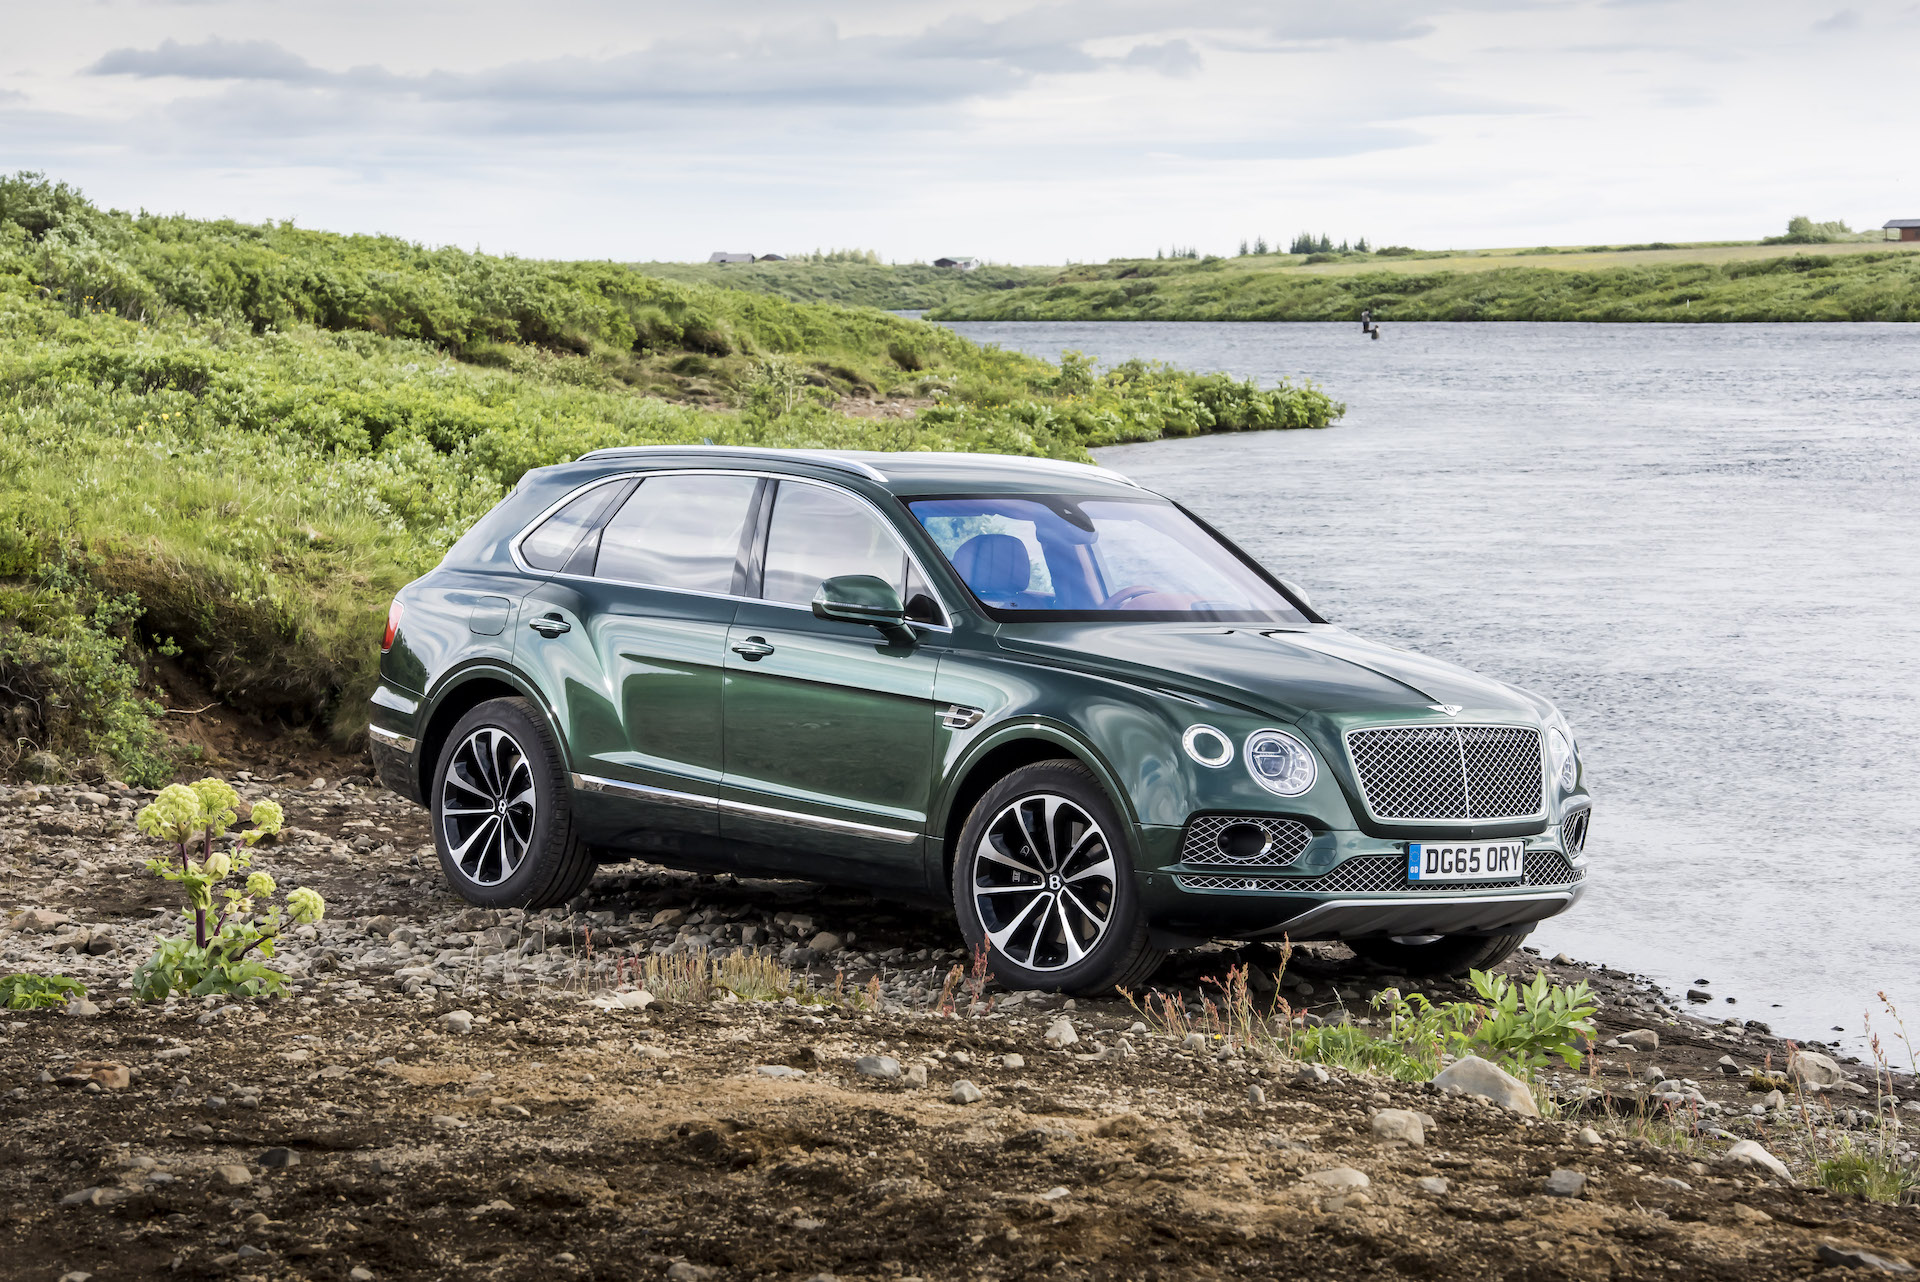 canada s lease takeover test bentley review research leasebusters en bentayga alt teaser asp pioneers road